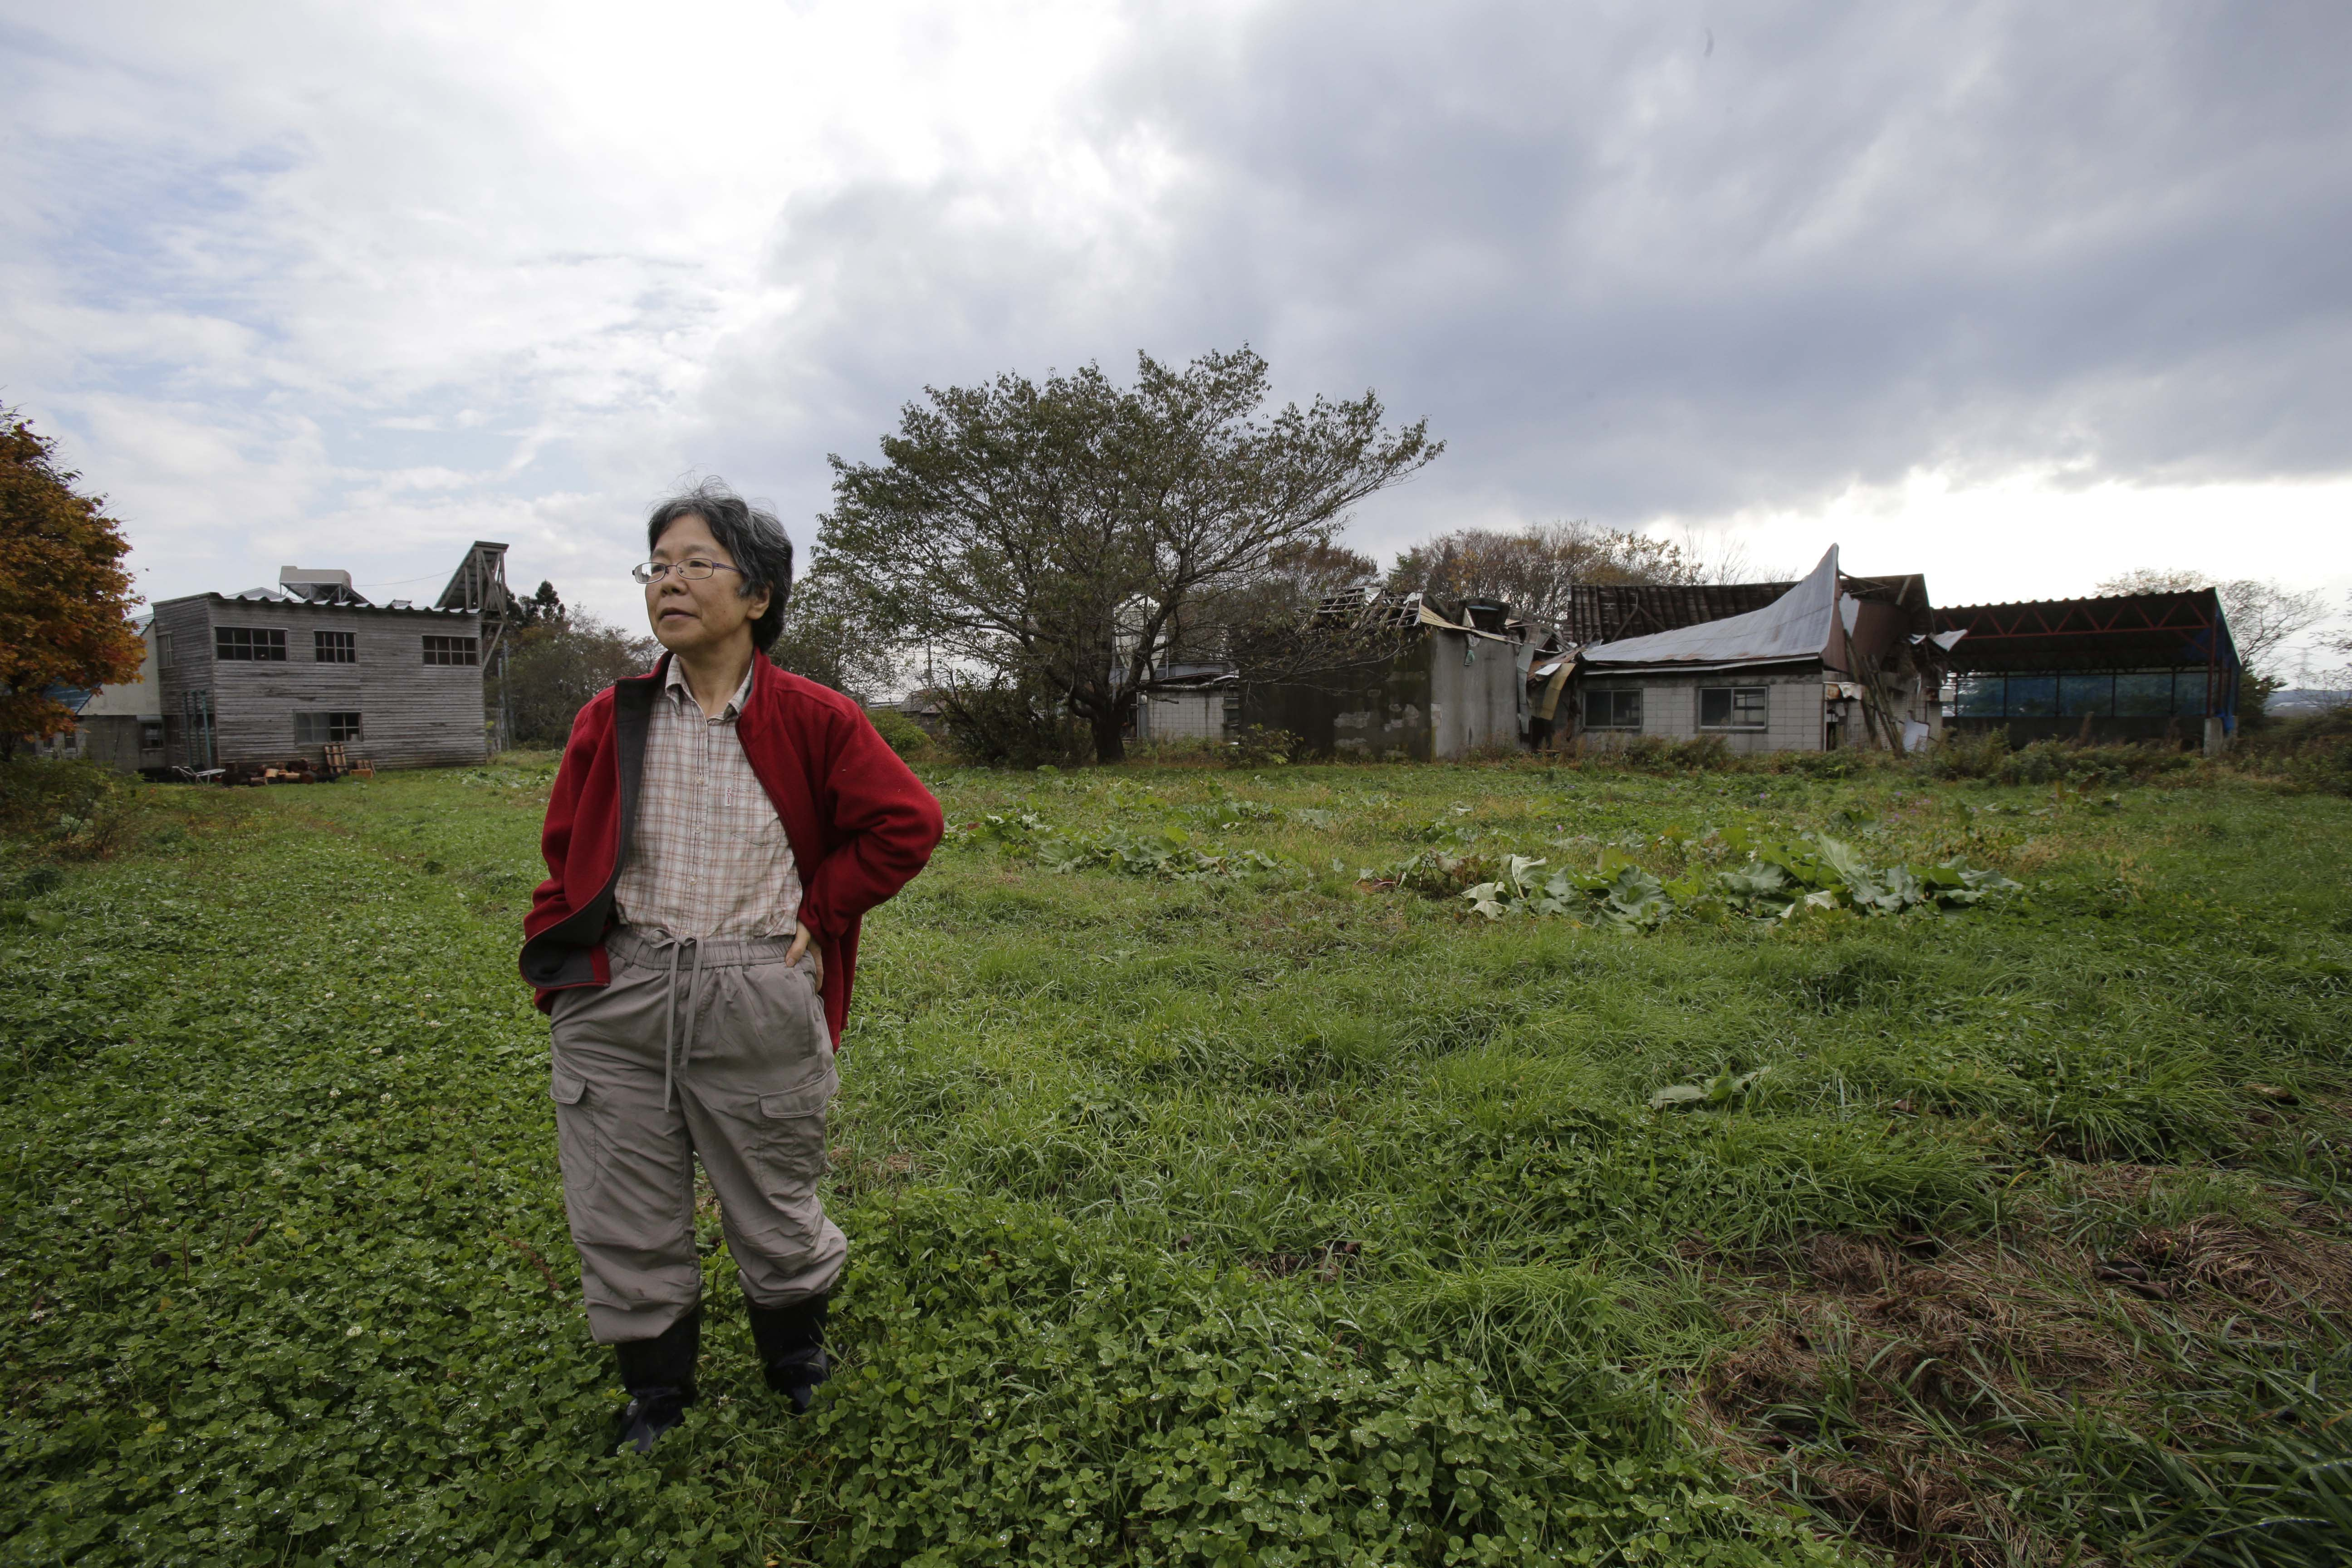 """In this Nov. 7, 2012 photo, farmer Keiko Kikukawa stands in her field in Rokasho village, Aomori Prefecture, northern Japan. By hosting a high-tech facility that would convert spent fuel into a plutonium-uranium mix designed for the next generation of reactors, Rokkasho was supposed to provide fuel while minimizing nuclear waste storage problems. Those ambitions are falling apart because years of attempts to build a """"fast breeder"""" reactor, which would use the reprocessed fuel, appear to be ending in failure. """"It's so unfair that Rokkasho is stuck with the nuclear garbage from all over Japan,"""" Kikukawa said. """"And it's not going to go away even if the Rokkasho plant stops immediately. We're dumping it all onto our offsprings to take care of. It's so irresponsible."""" (AP Photo/Koji Sasahara)"""